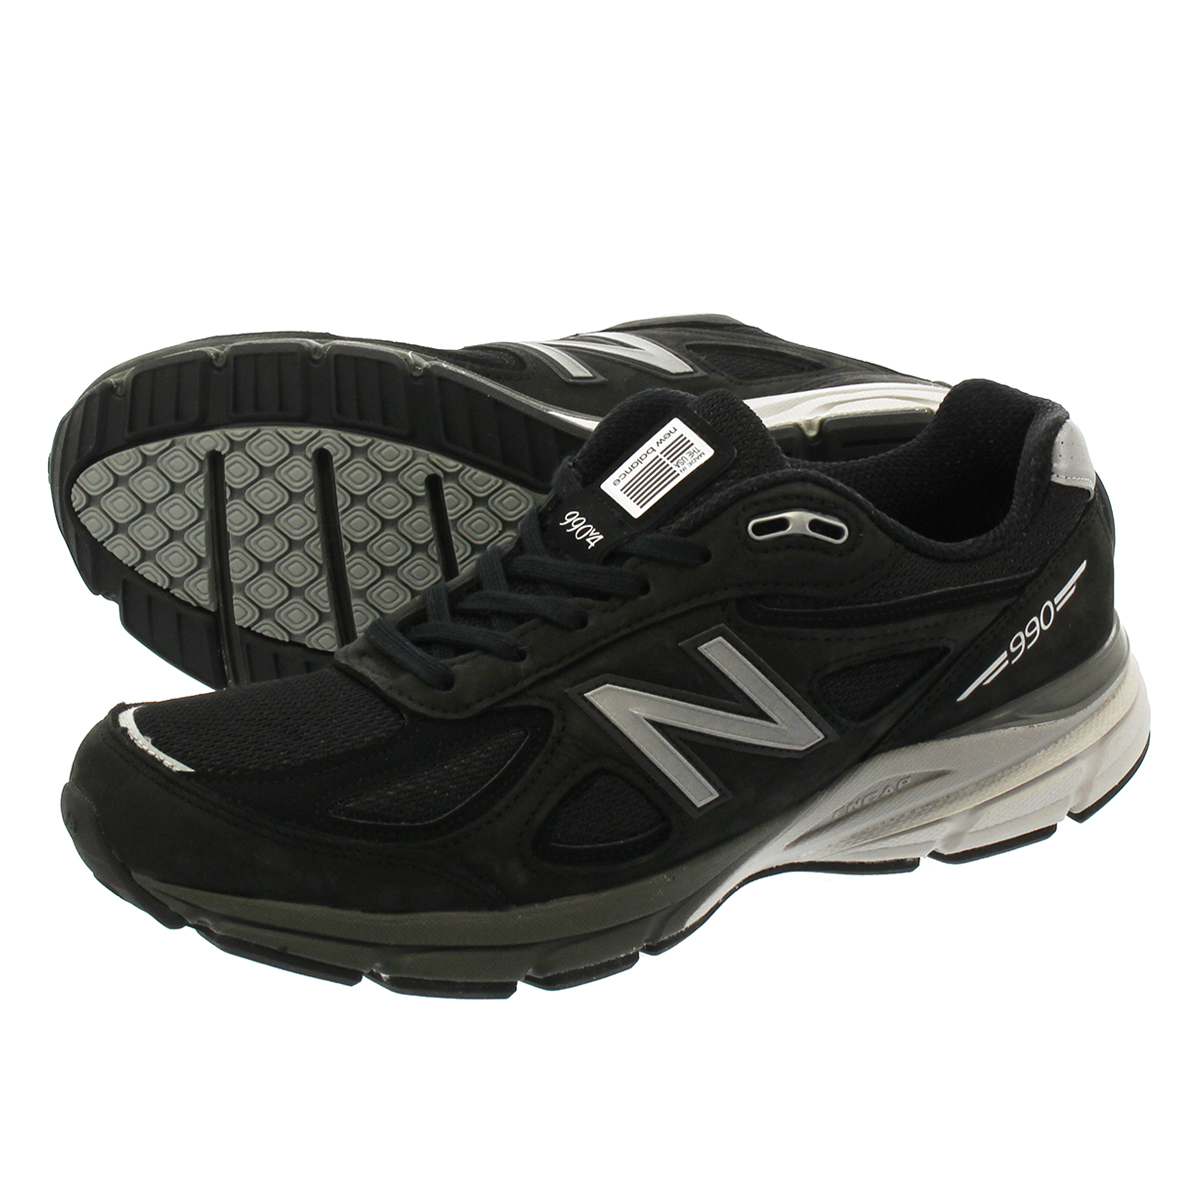 NEW BALANCE M990IB4 【MADE IN U.S.A】 ニューバランス M990 IB4 BLACK/SILVER